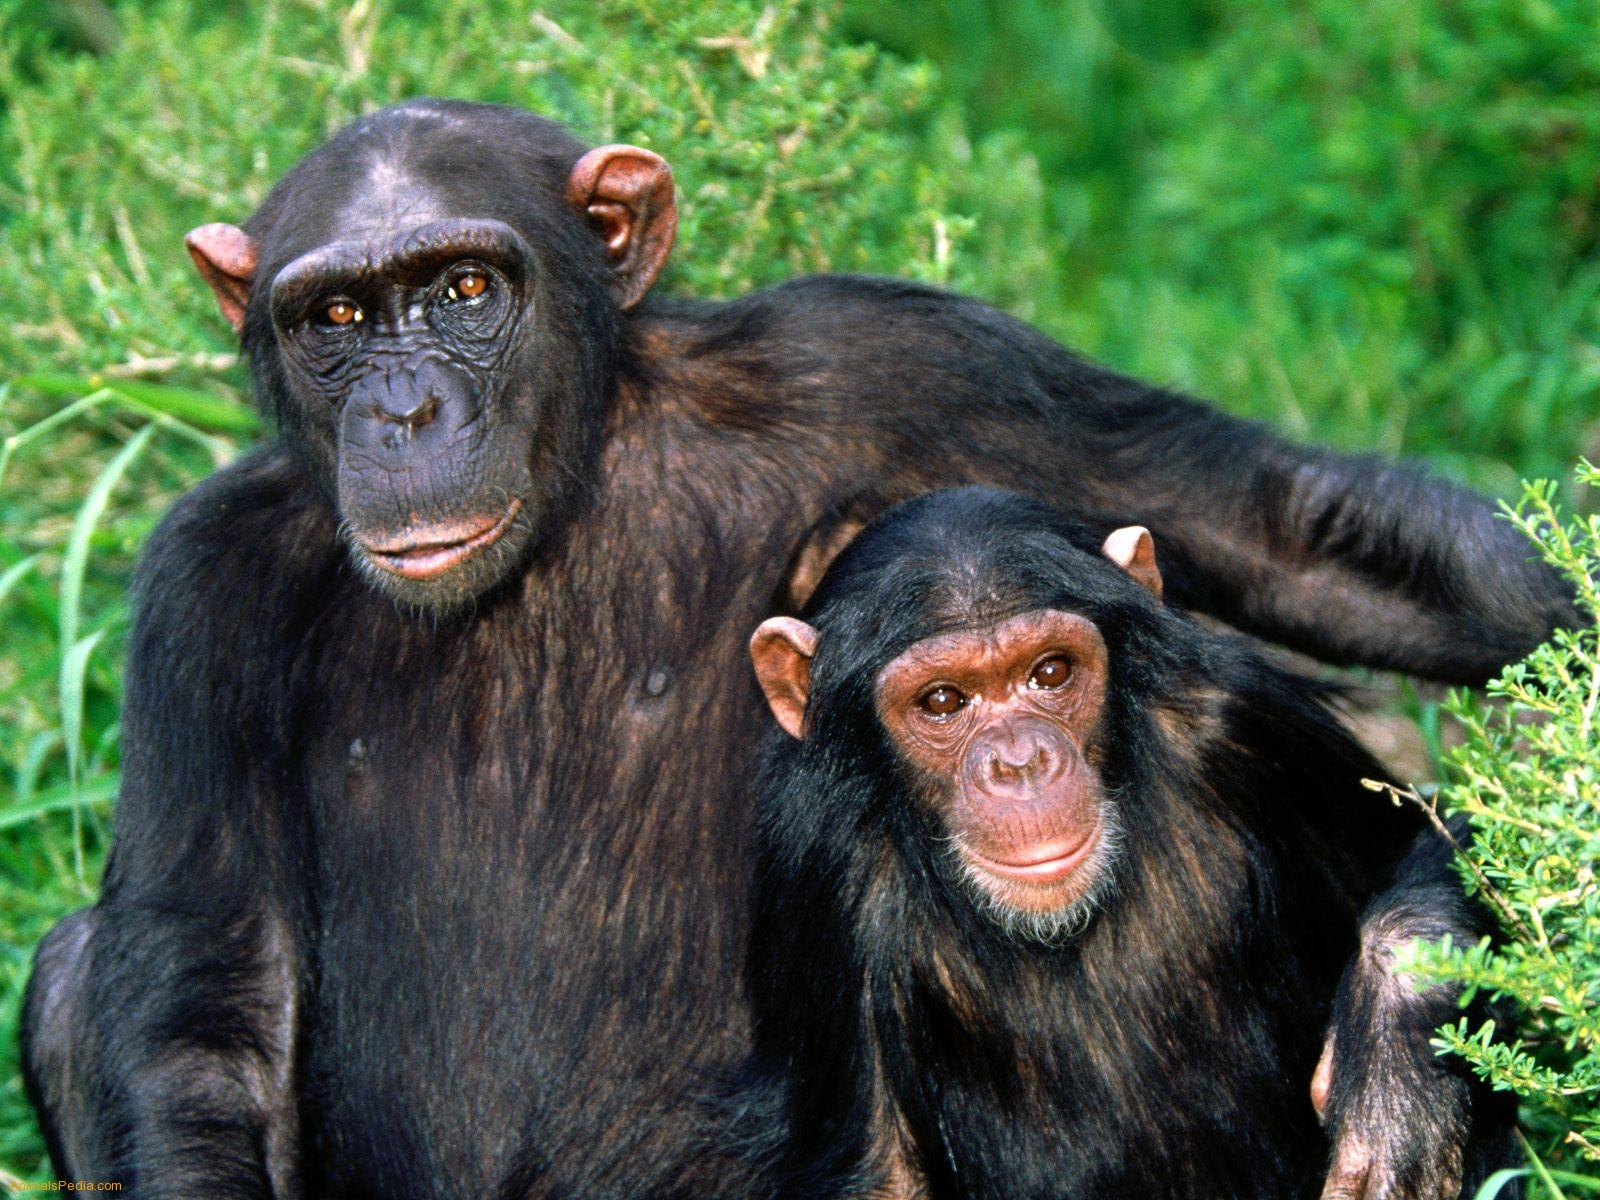 Chimpanzee 27207033 Wallpaper for Free | Amazing HQ Definition Photos